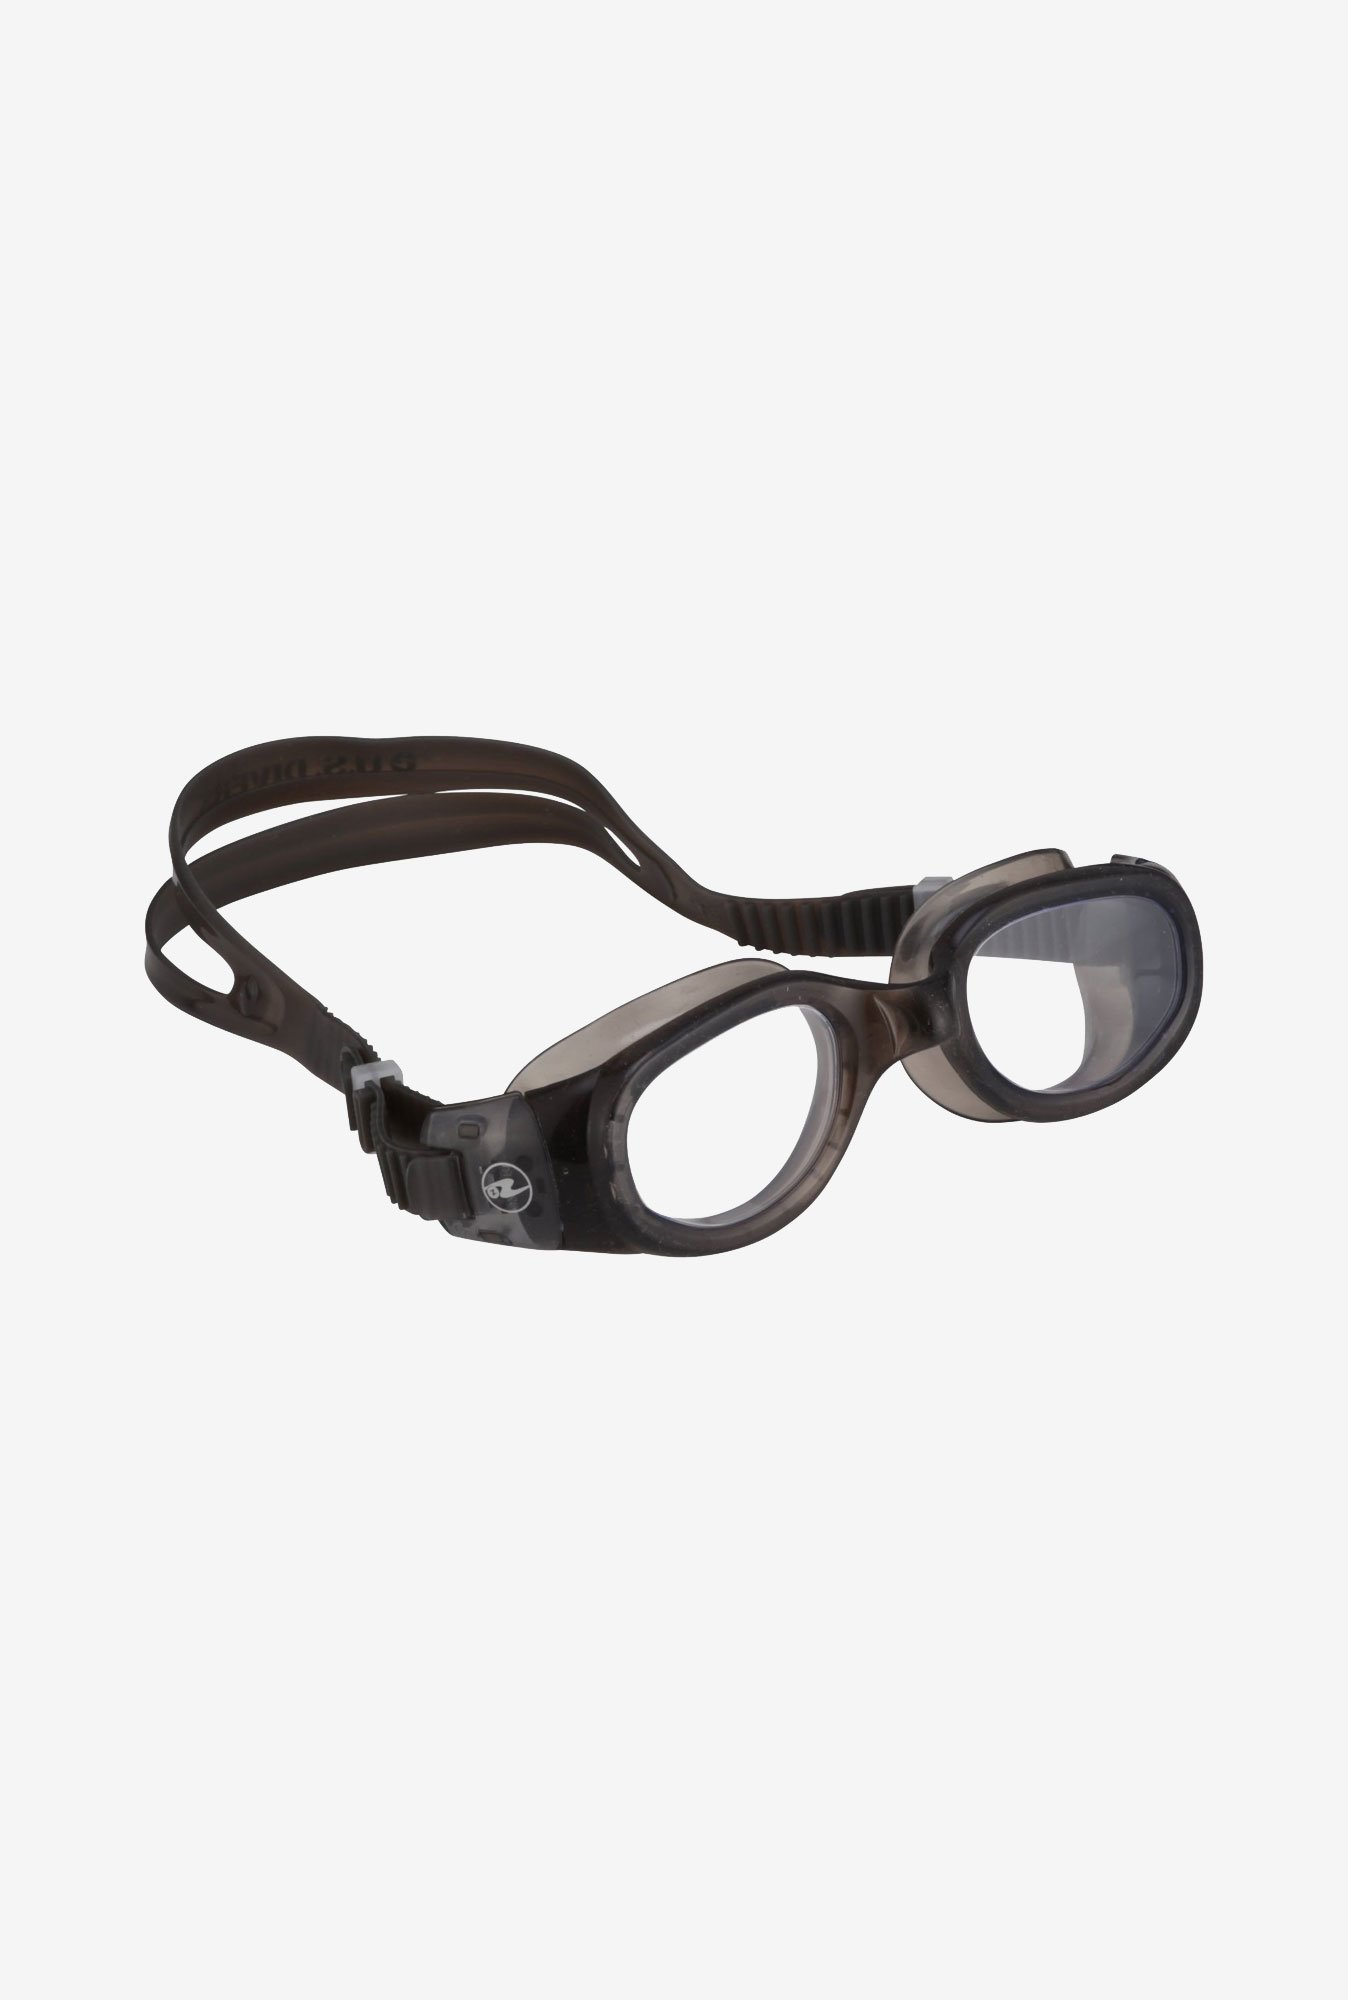 U.S. Divers Junior Medley Goggle with Clear Lens (Black)